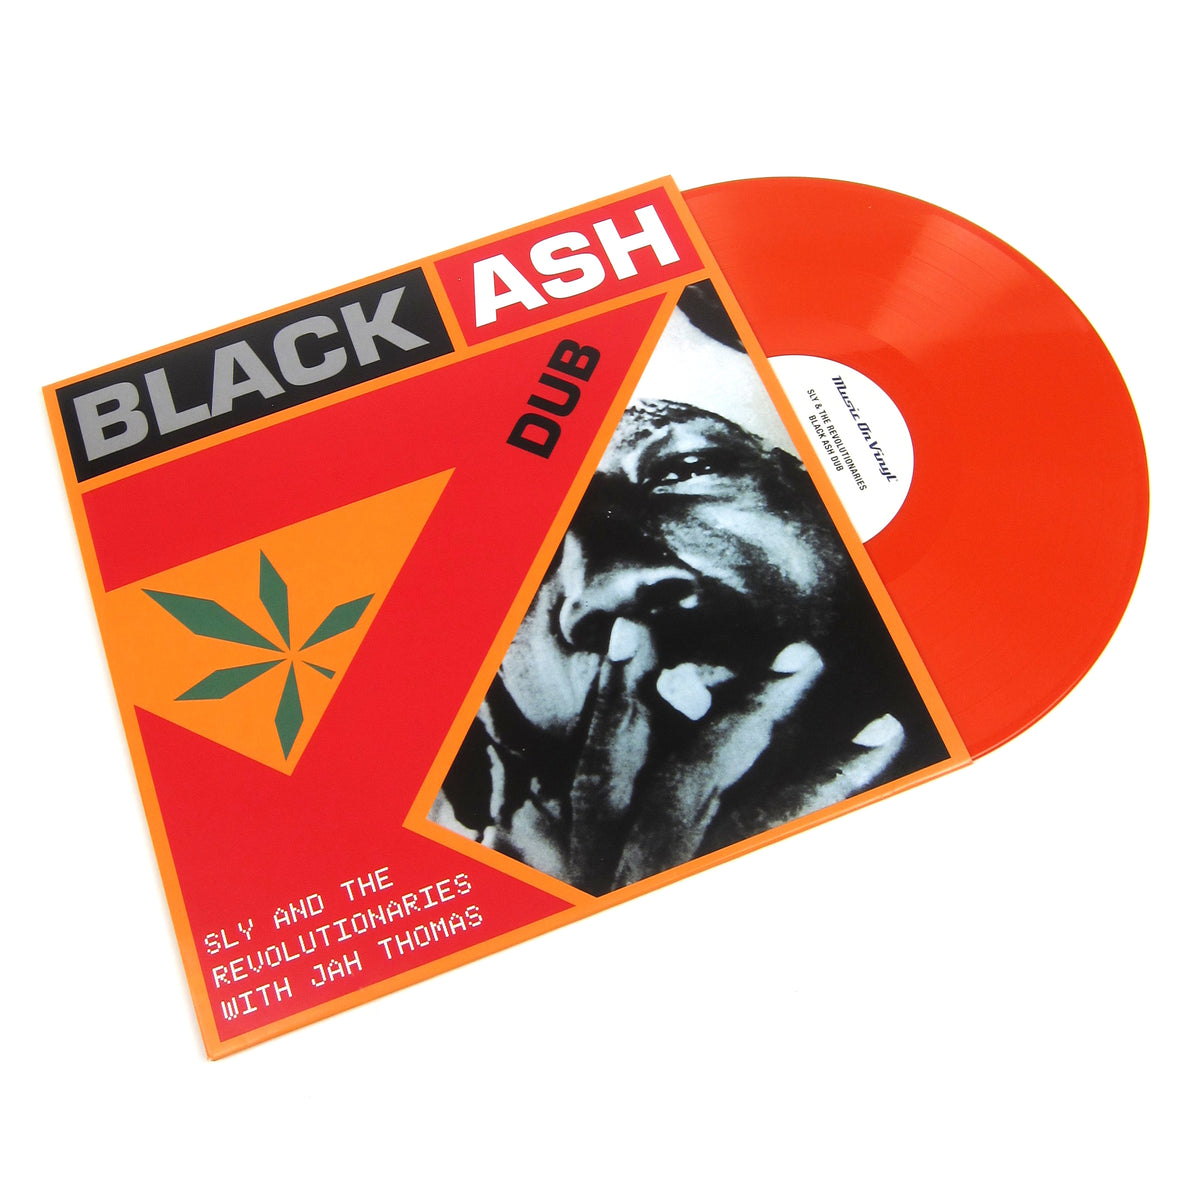 Sly & The Revolutionaries With Jah Thomas: Black Ash Dub (Music On Vinyl 180g, Colored Vinyl) Vinyl LP